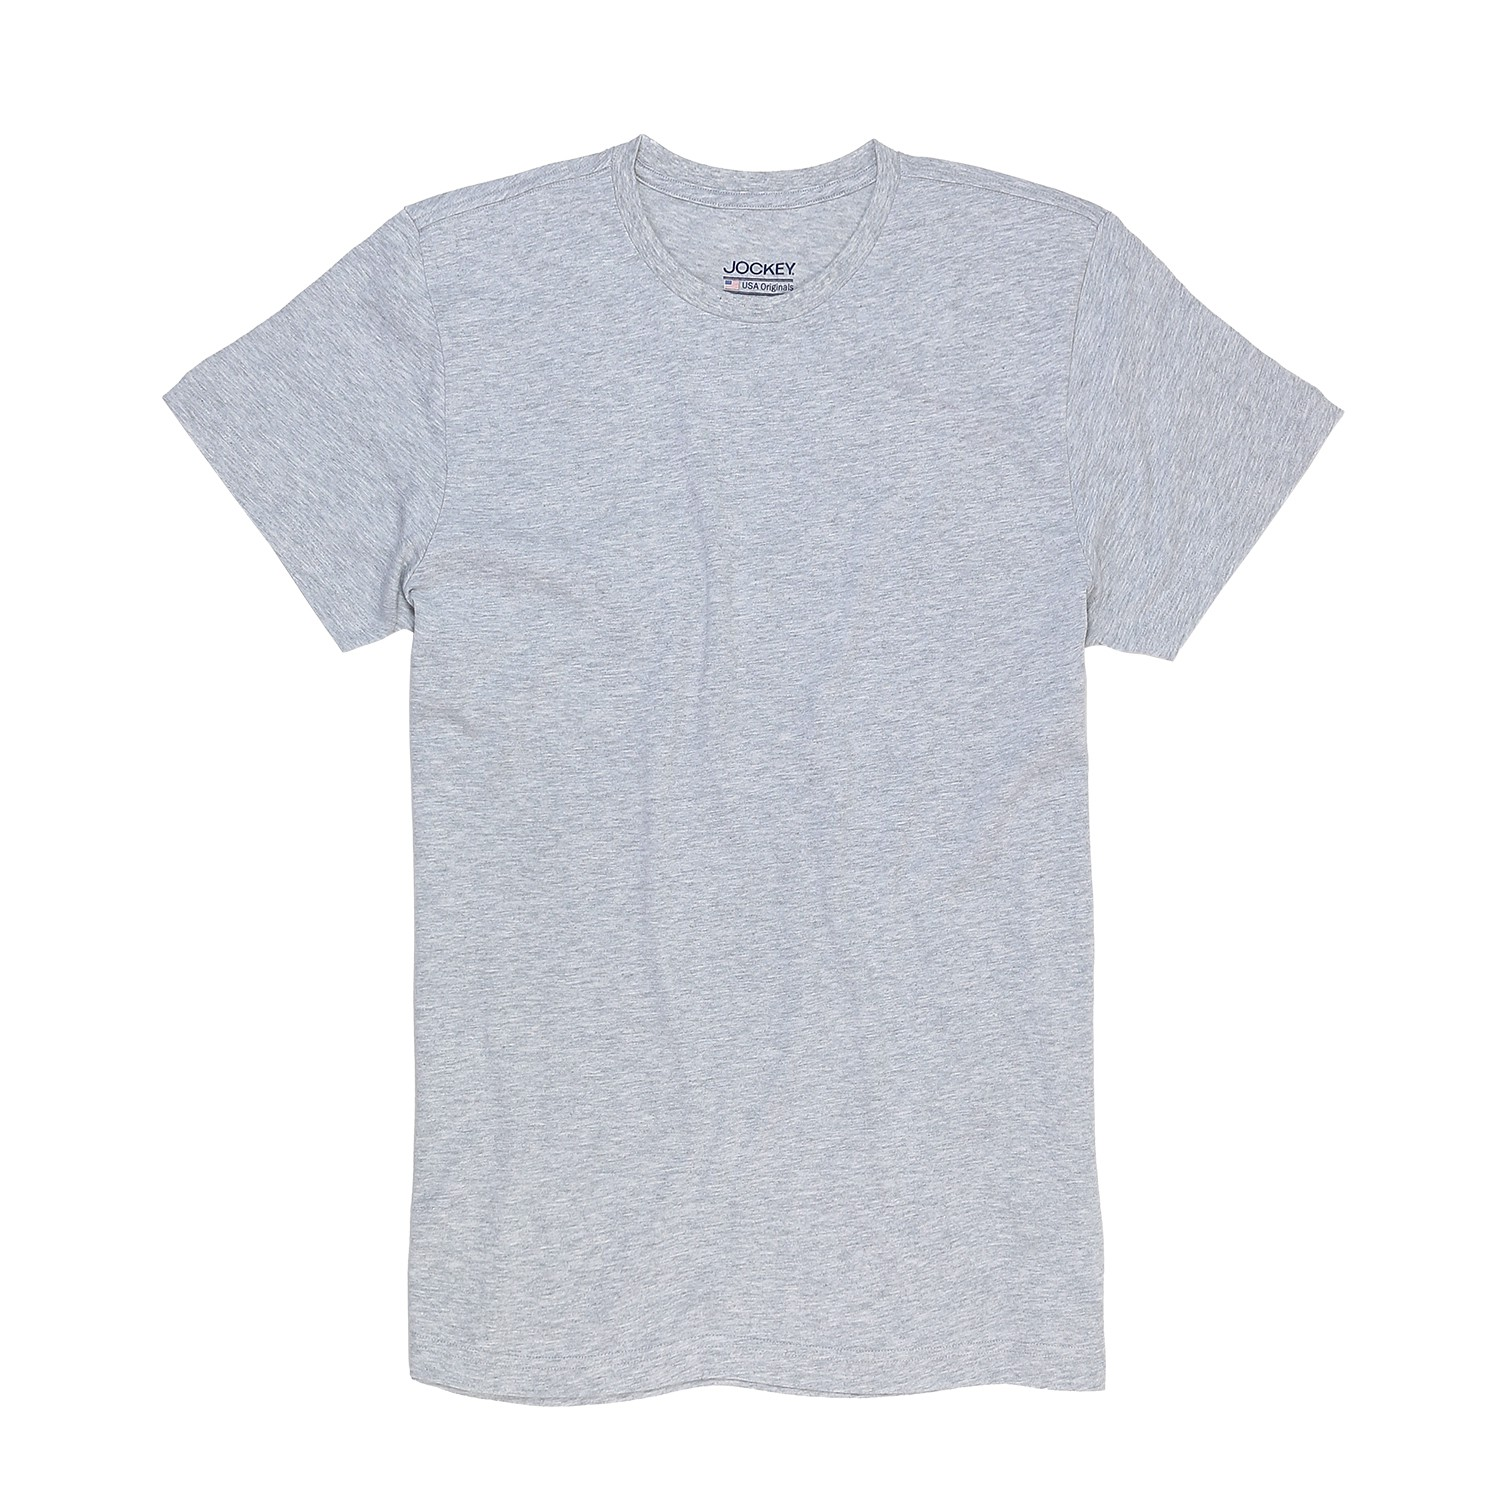 Detail Image to T-shirt from Jockey in oversize until 6XL, light grey